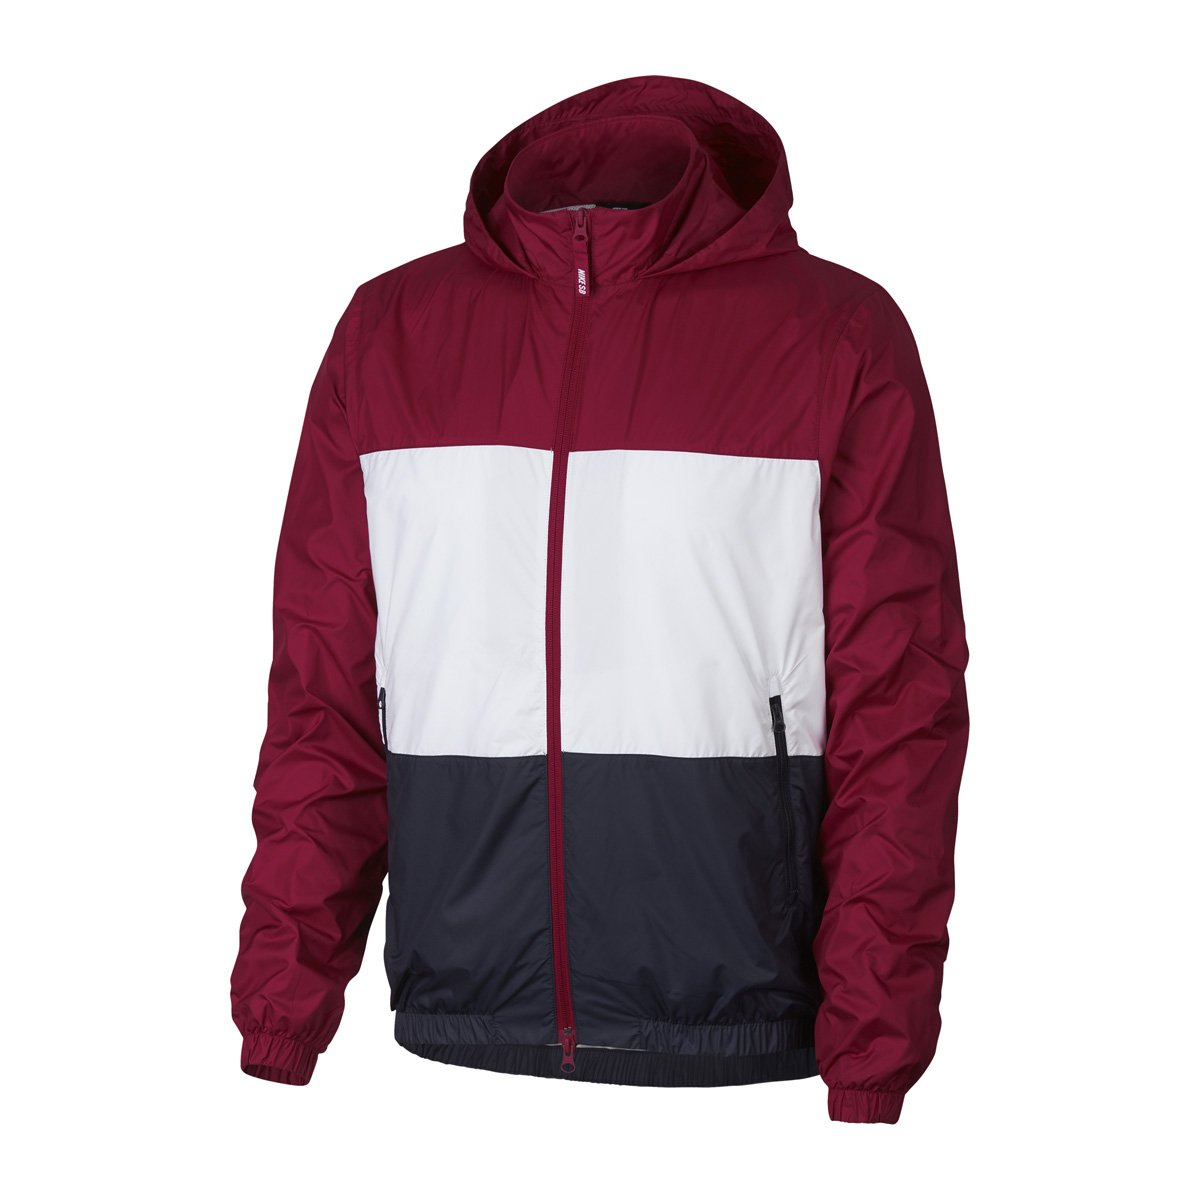 DRY JKT HOODED STRIPE